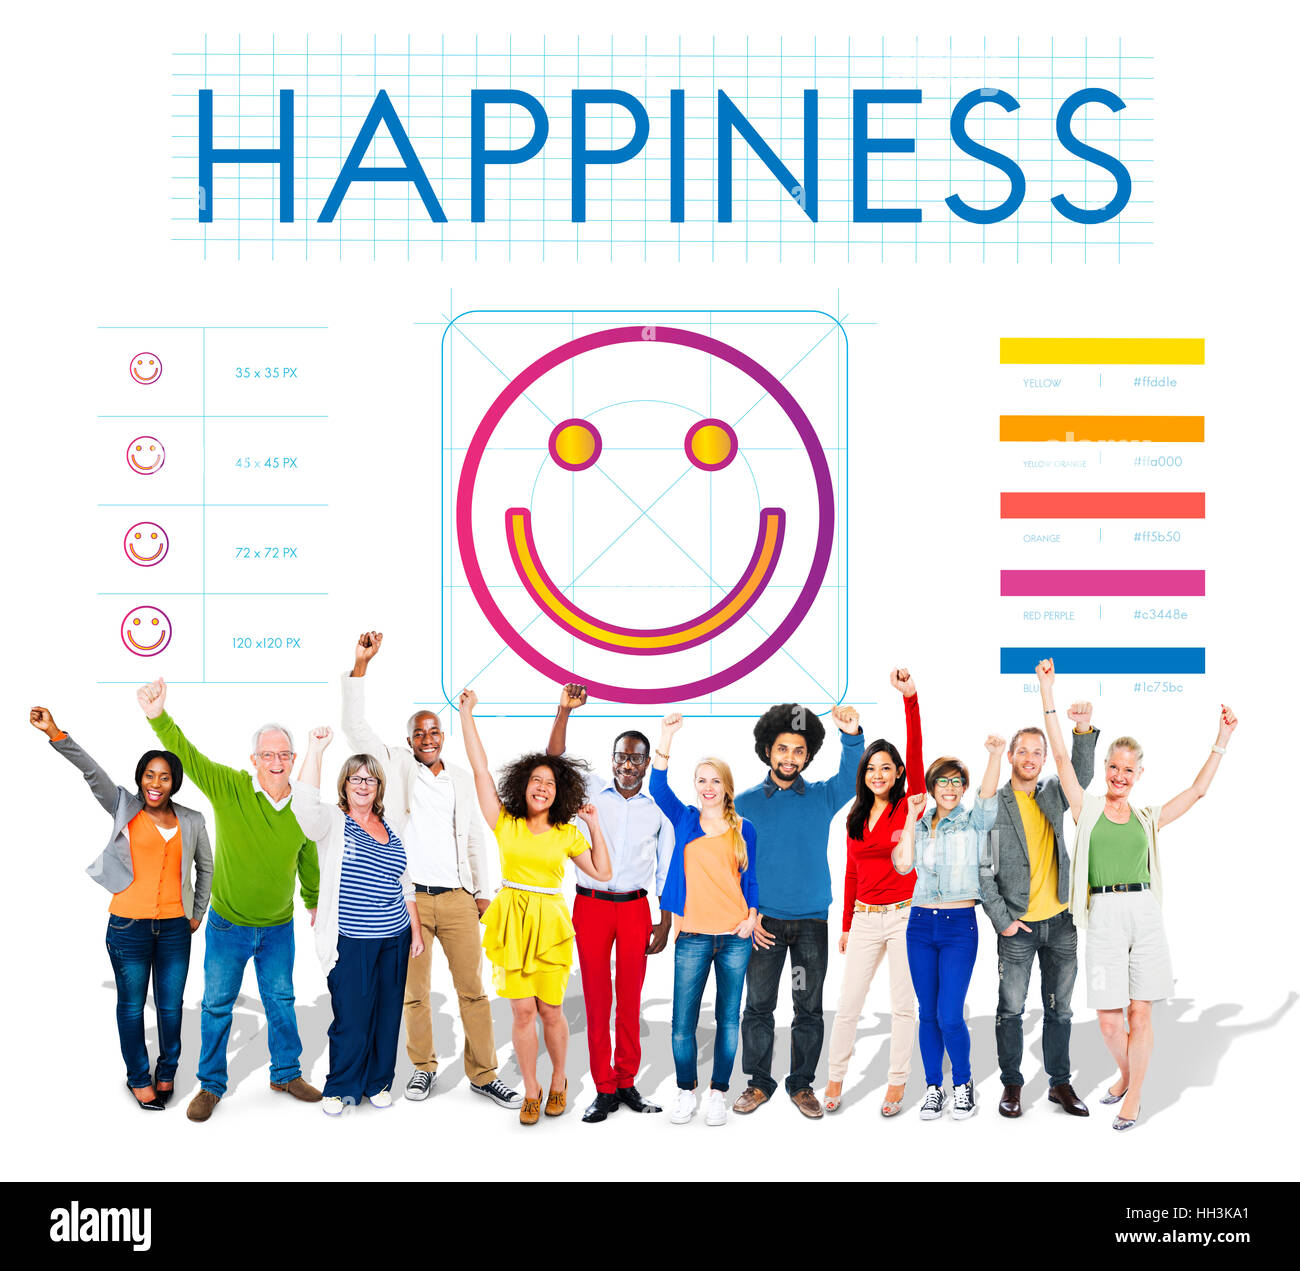 Positive Thinking Happiness Lifestyle Concept - Stock Image